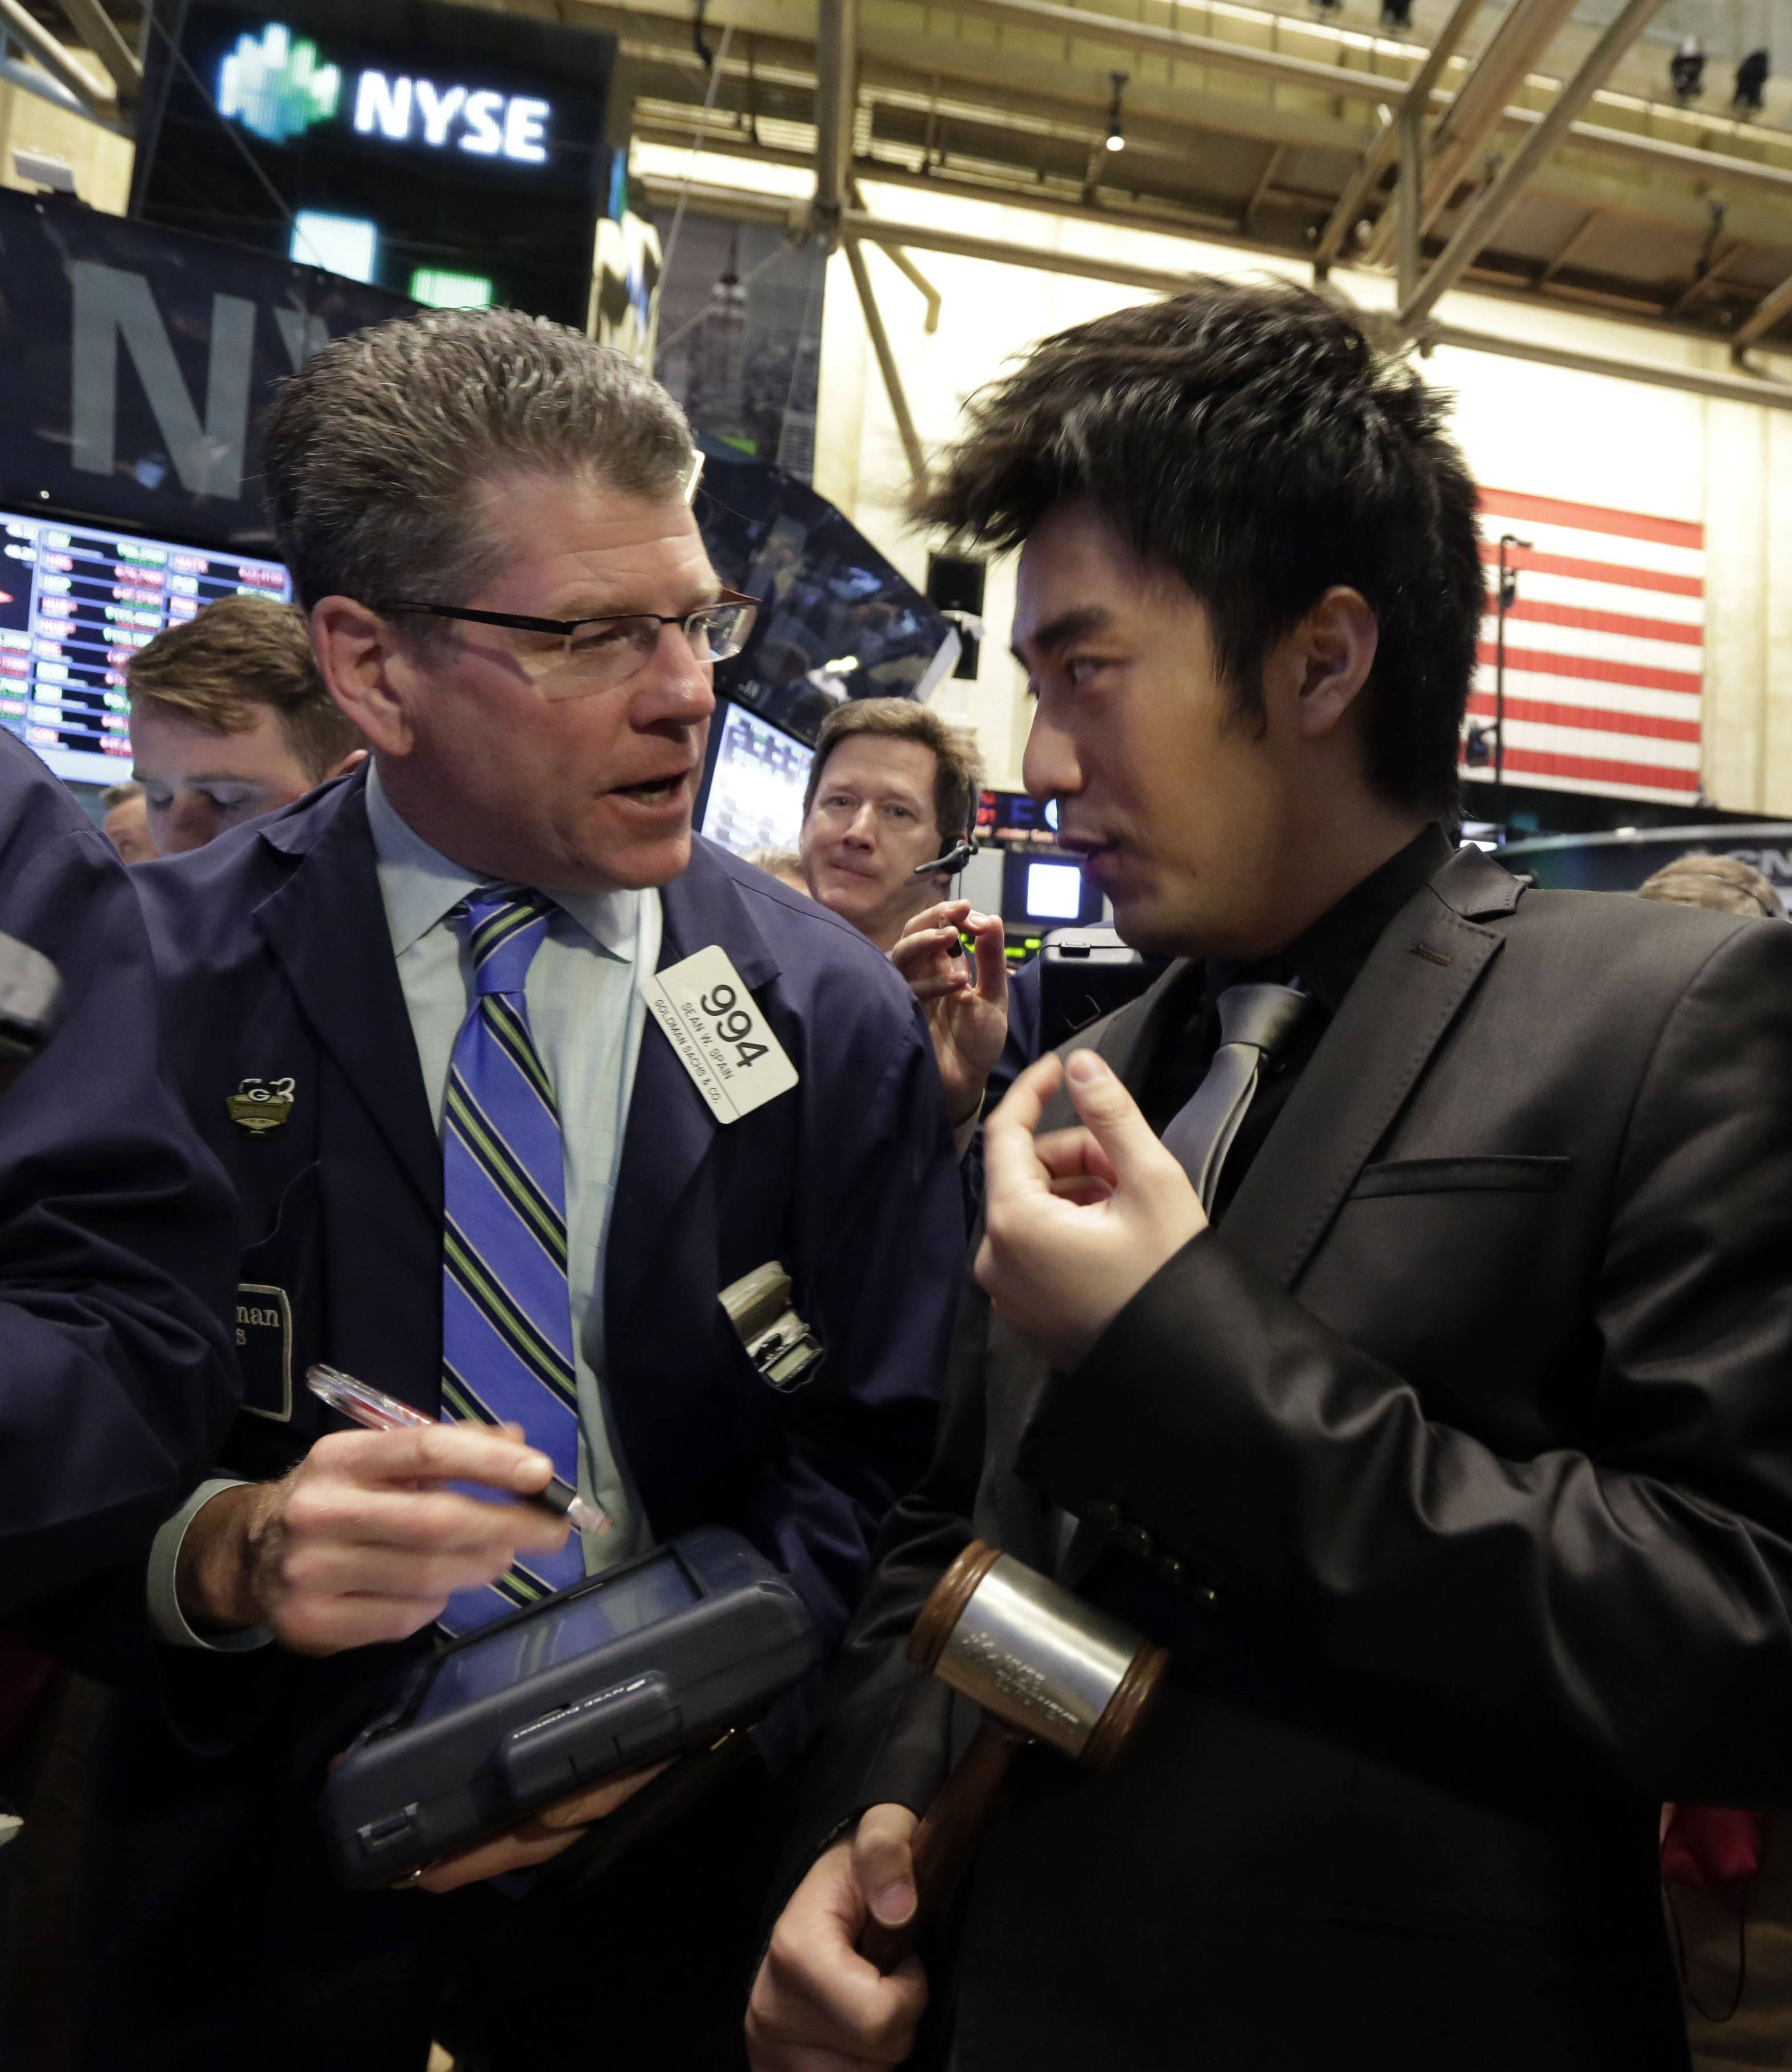 CEO Leo Ou Chen of Jumei.com, right, talks Friday with trader Sean Spain on the floor of the New York Stock Exchange before his company's IPO begins trading.